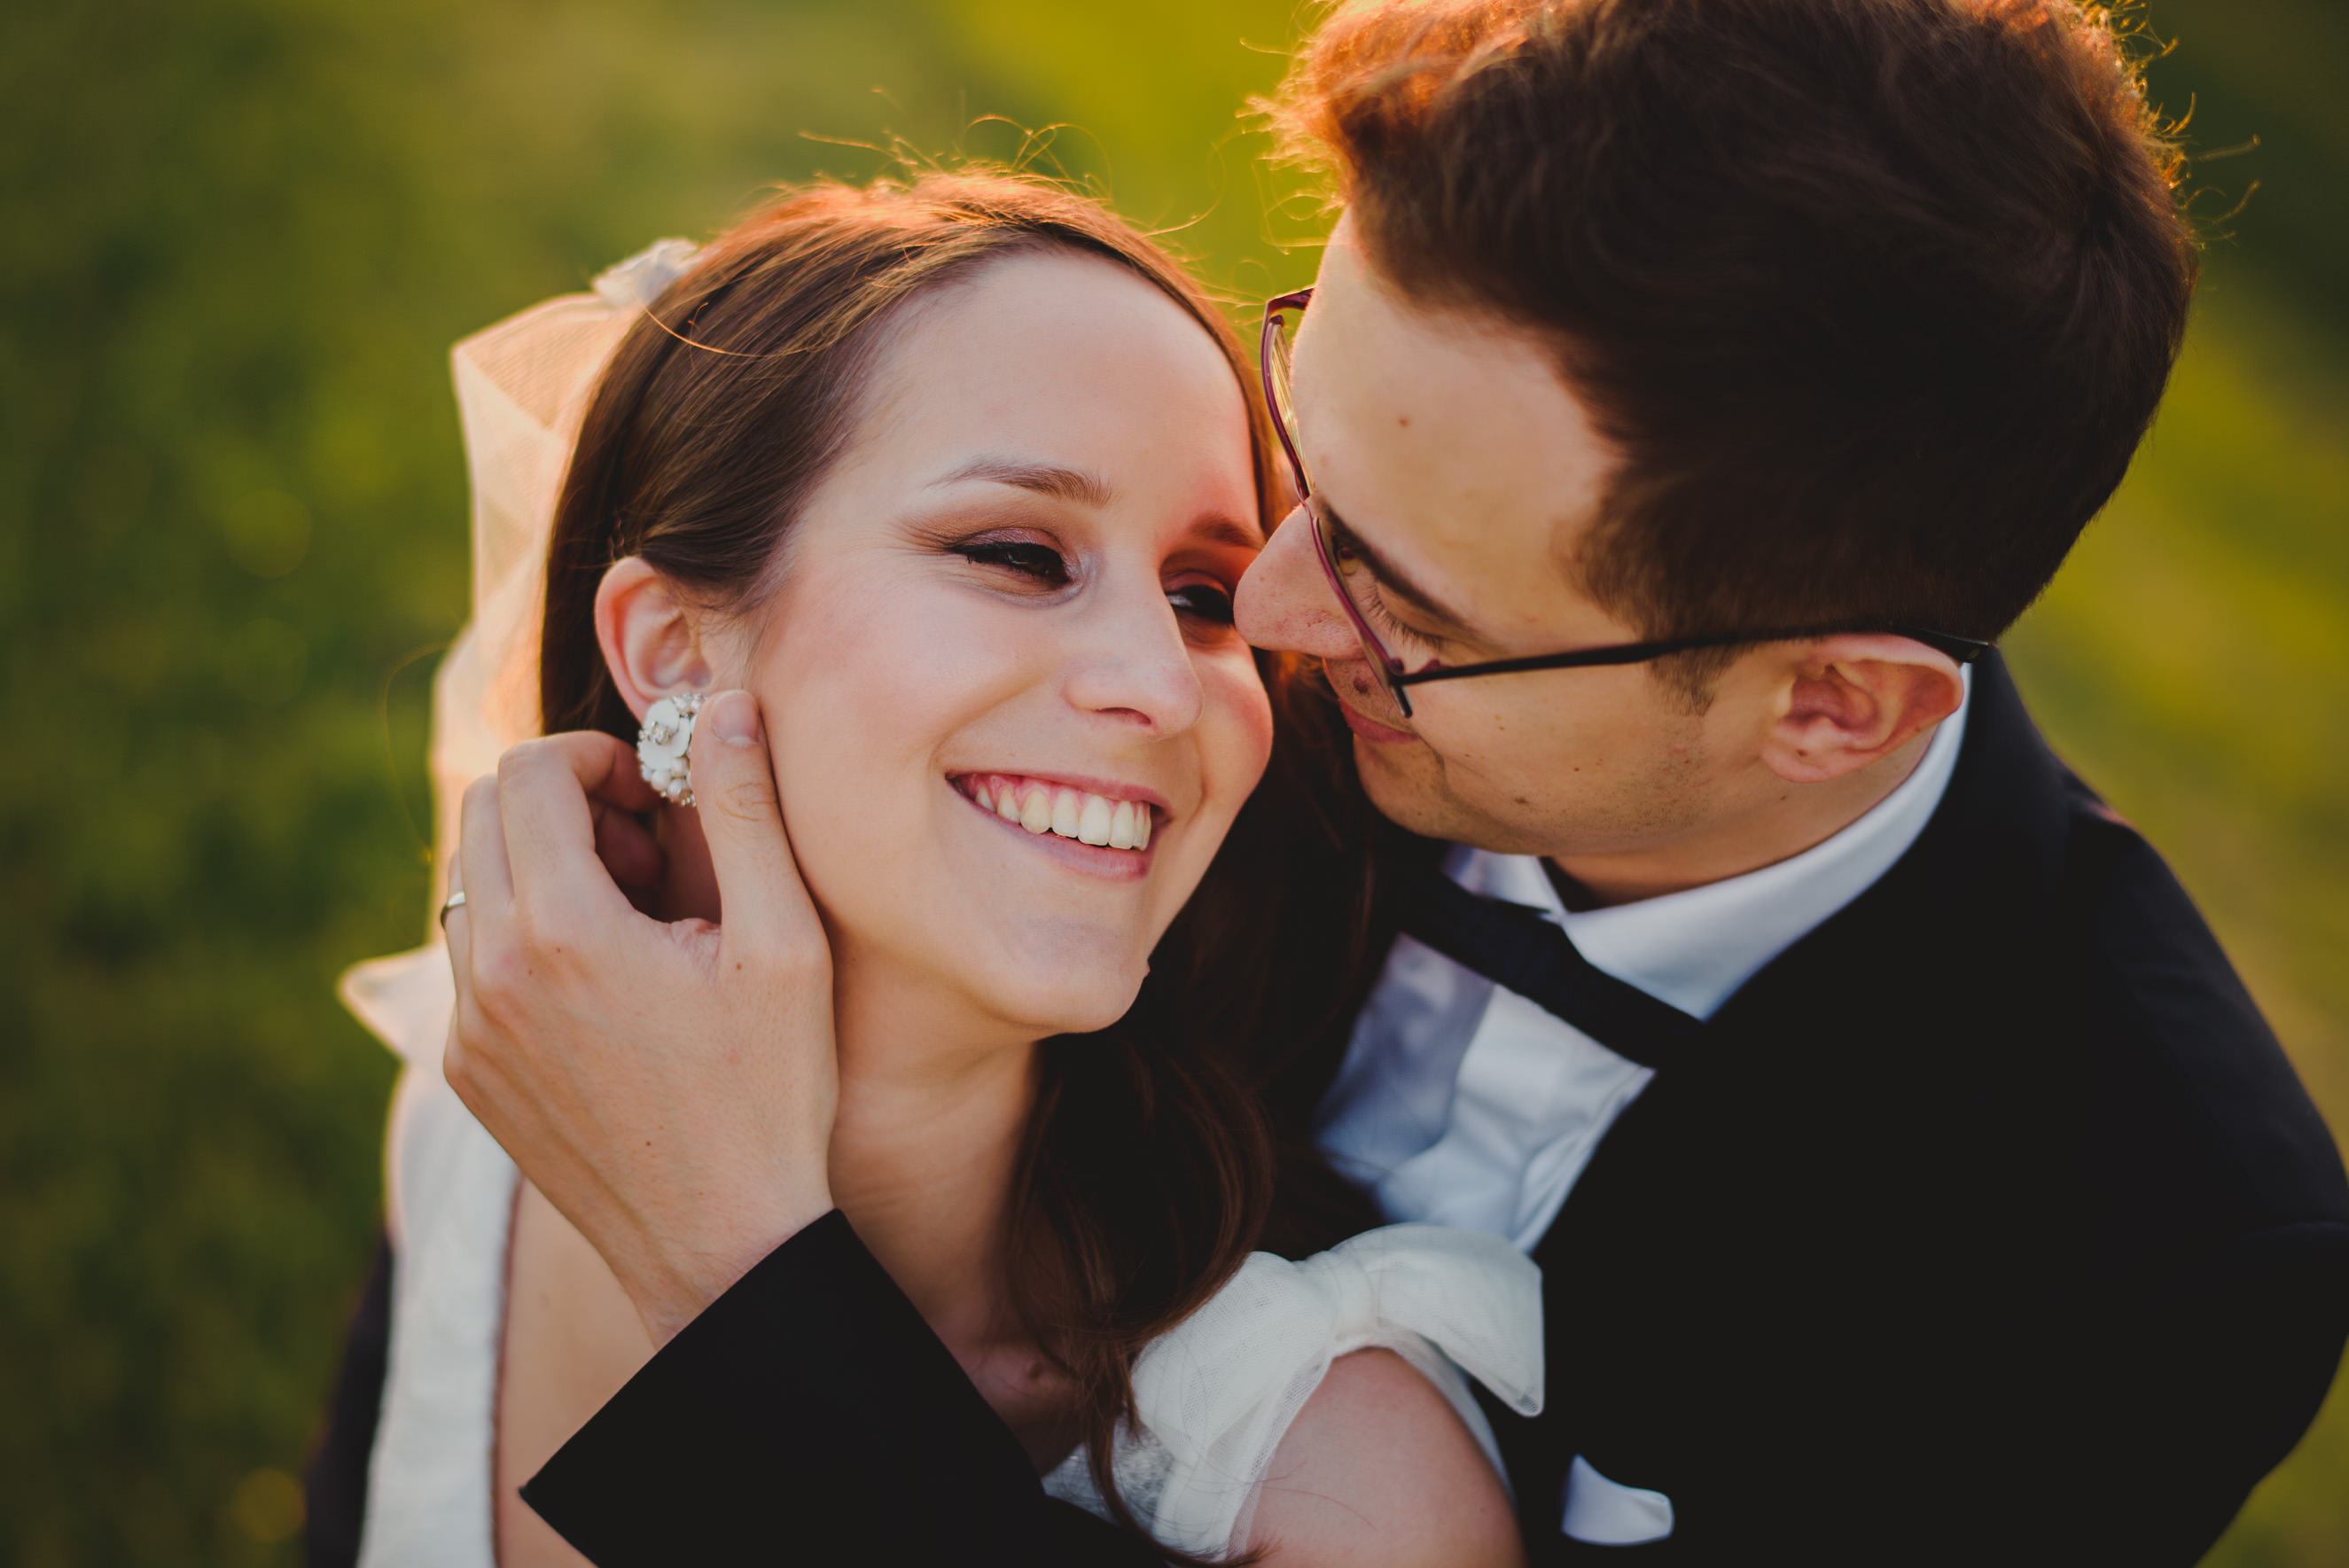 romantic hug between bride and her groom in the middle of the field